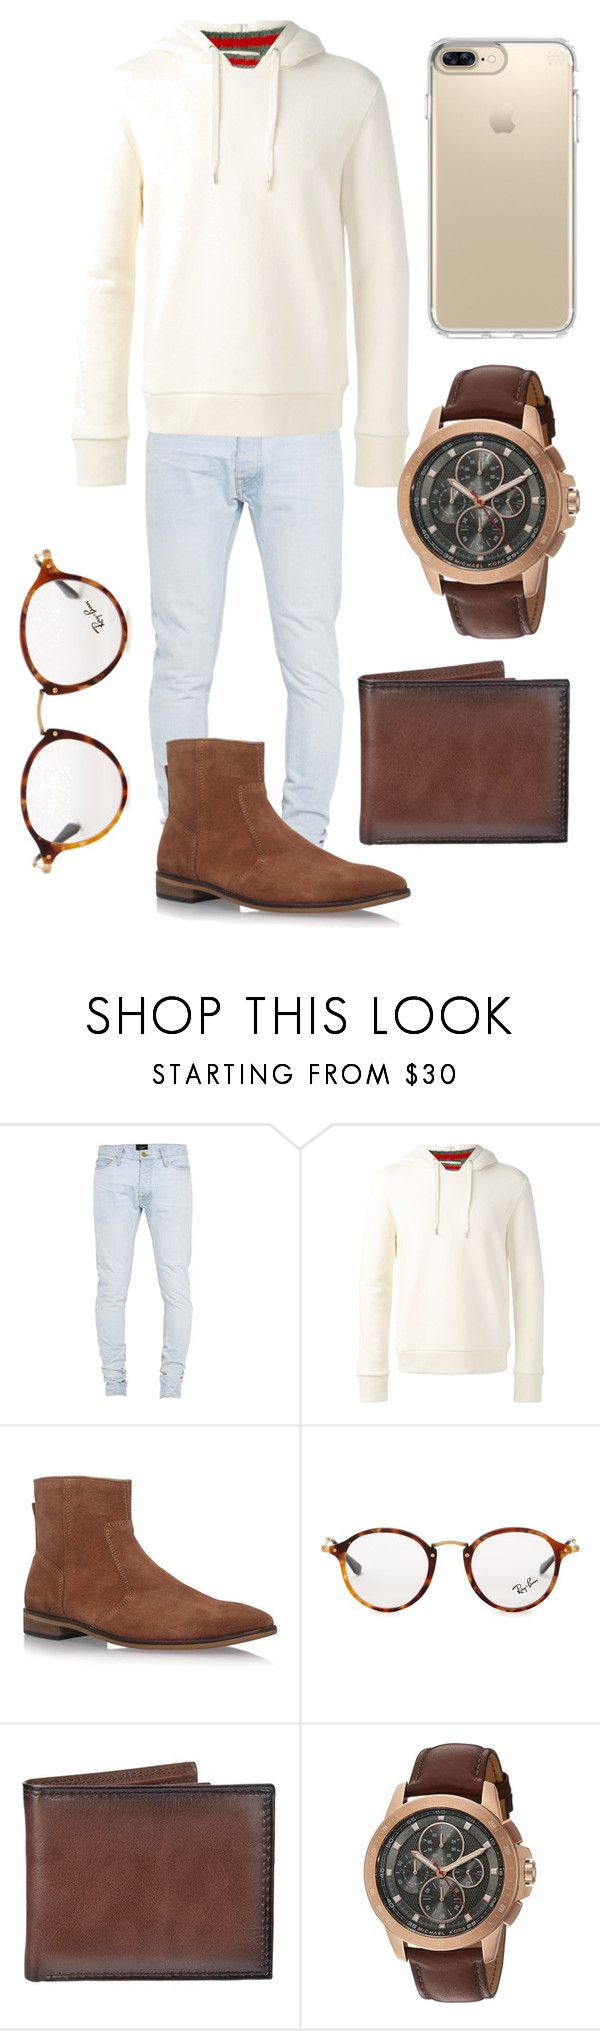 """""""Lorenzo"""" by vejacomotenpovoa ❤ liked on Polyvore featuring Fear of God, Gucci, KG Kurt Geiger, Ray-Ban, Croft & Barrow, Michael Kors, Speck, men's fashion and menswear"""